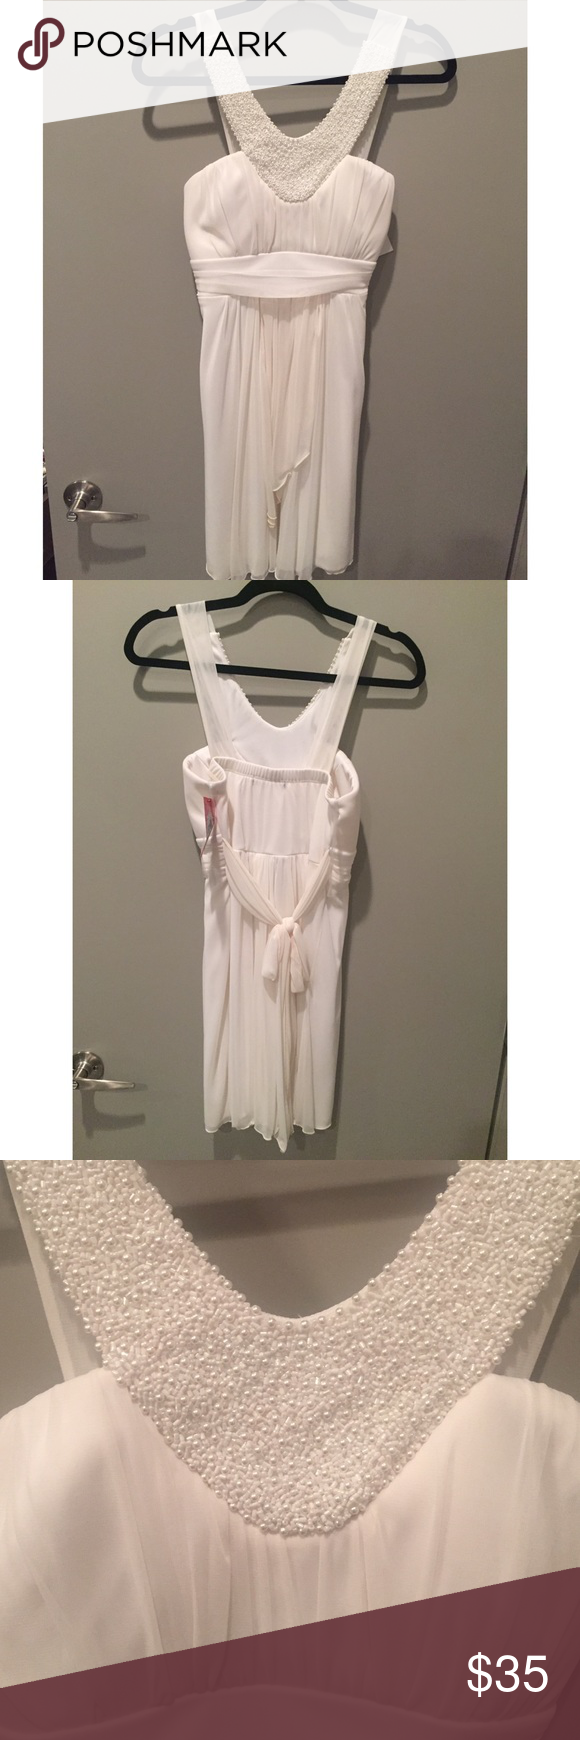 NWT off white beaded dress NWT Trixxi Girl dress. Off white color with beading at top. Tie in back and padded bust. Size 11 Trixxi Dresses